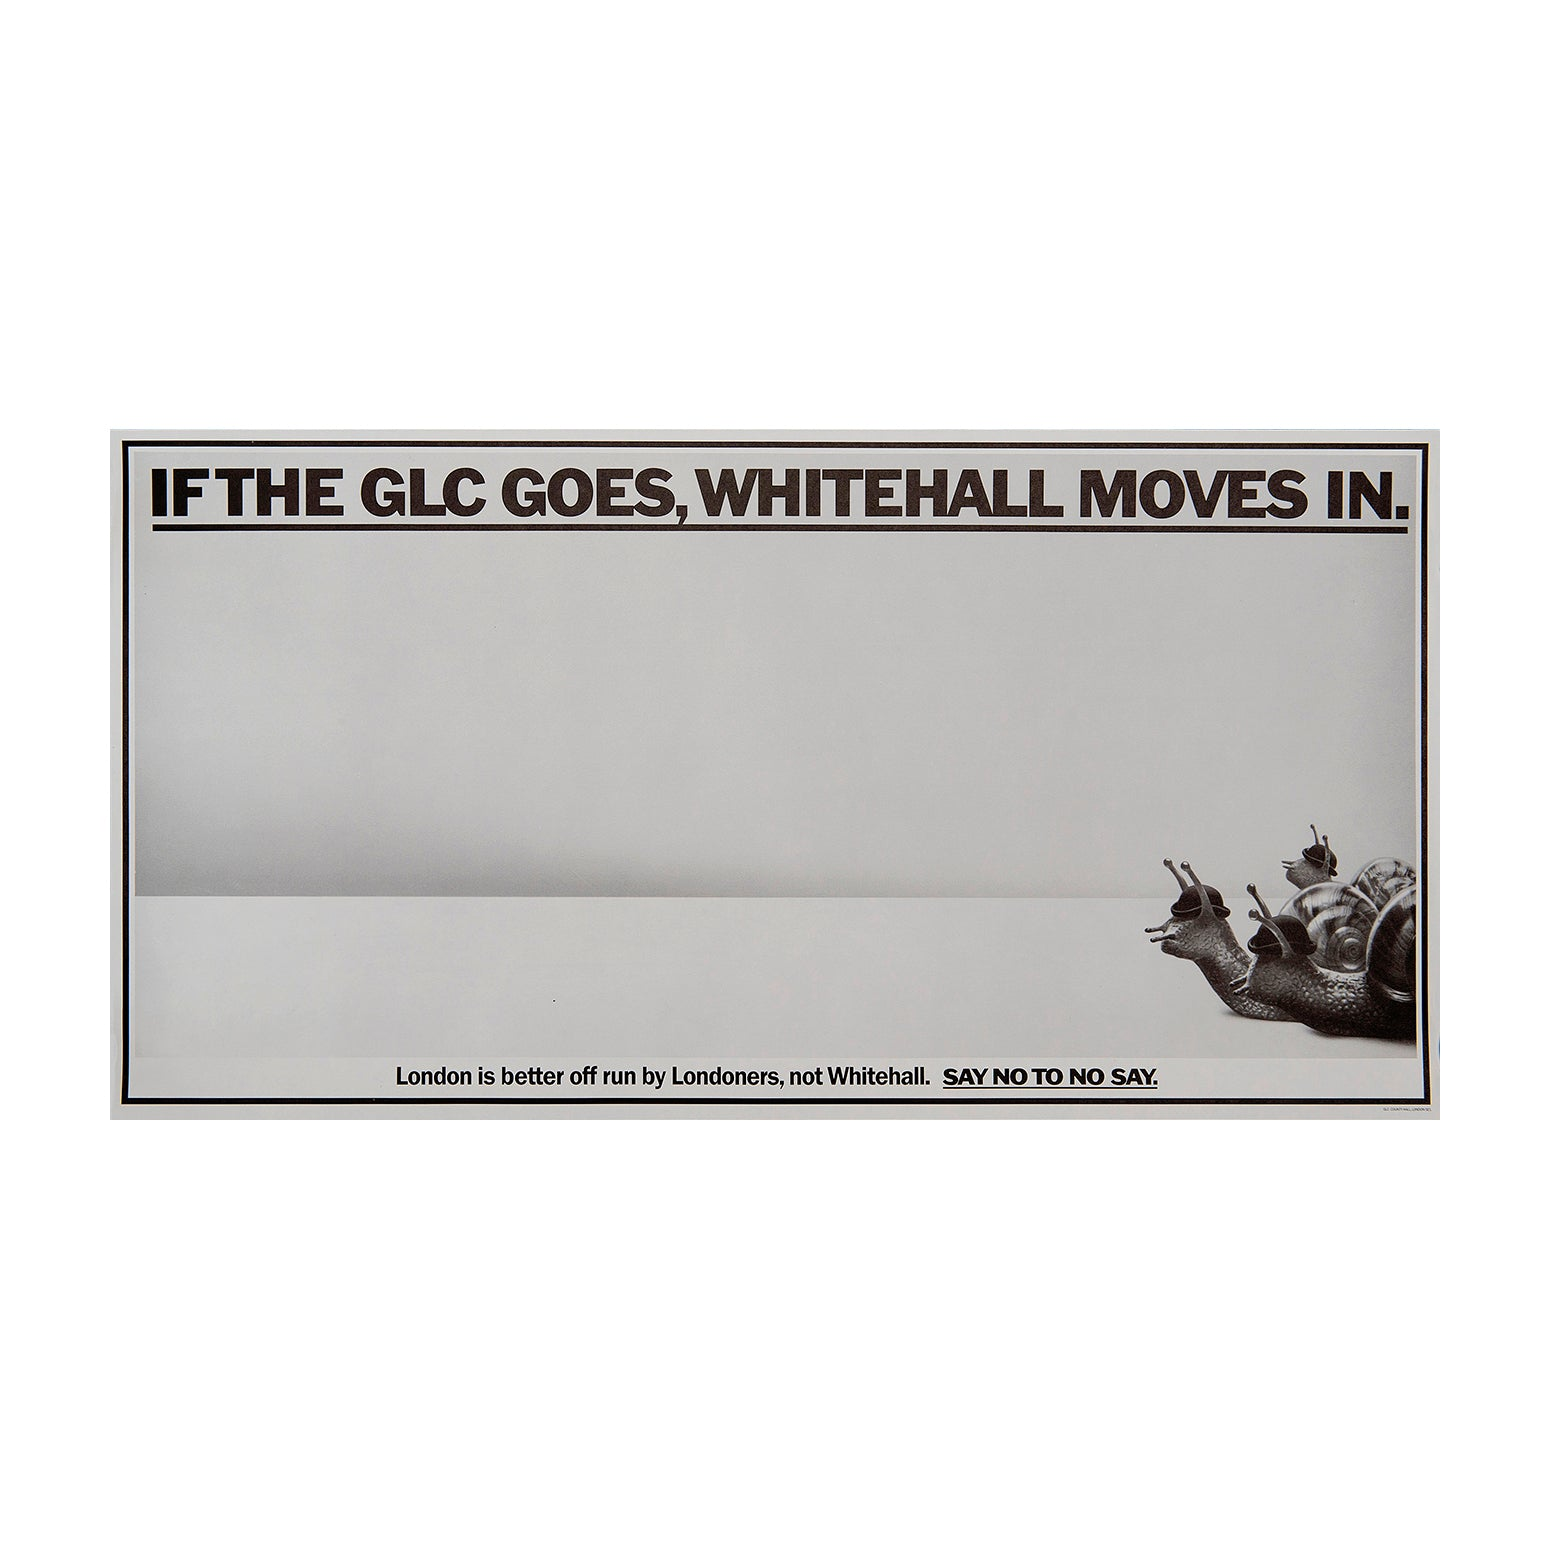 If the GLC goes, Whitehall moves in